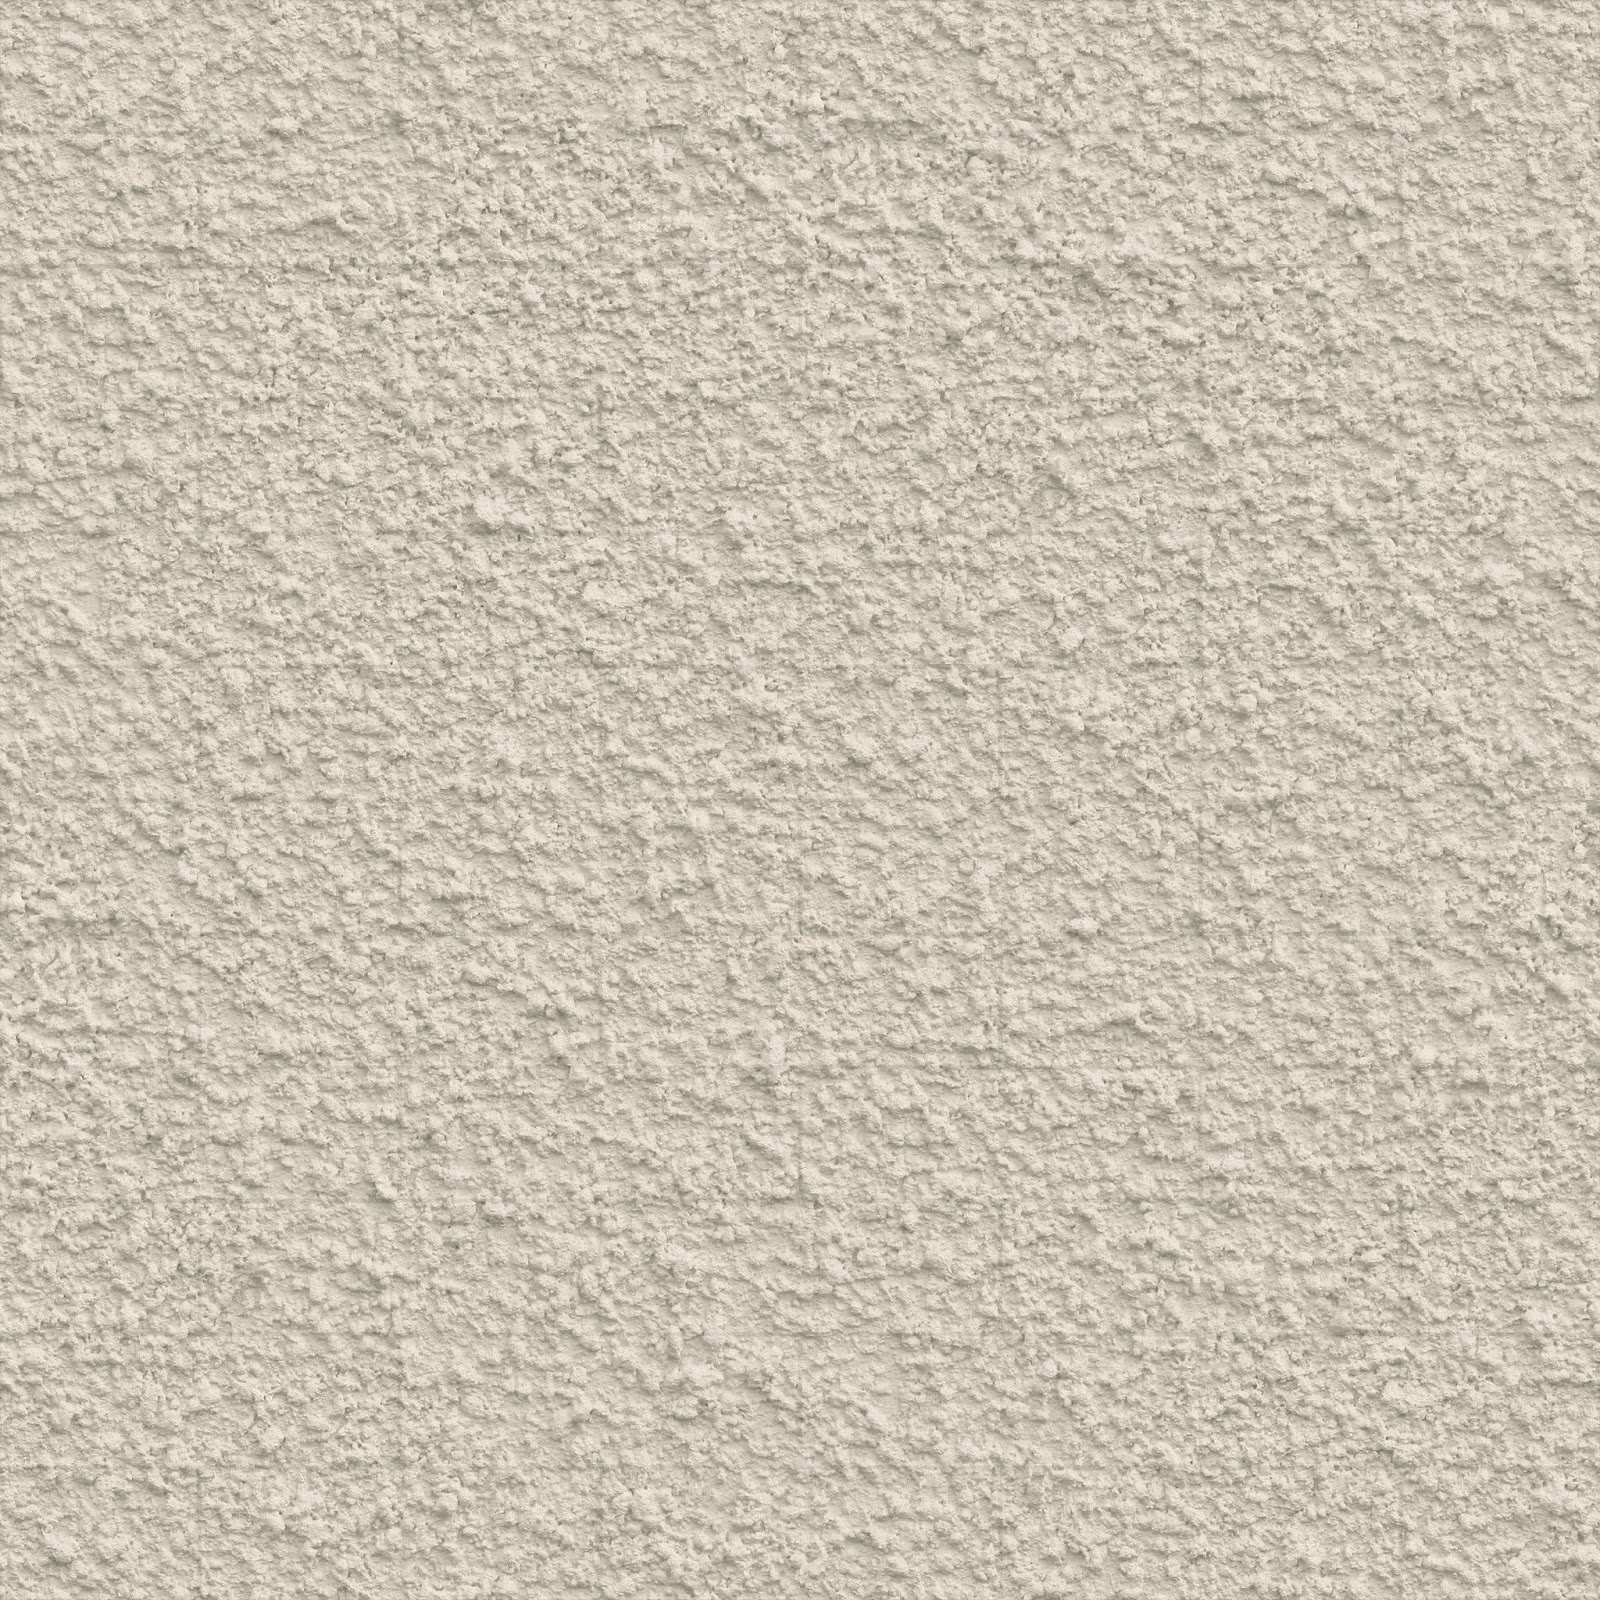 Wall Texture Examples High Resolution Seamless Textures Stucco